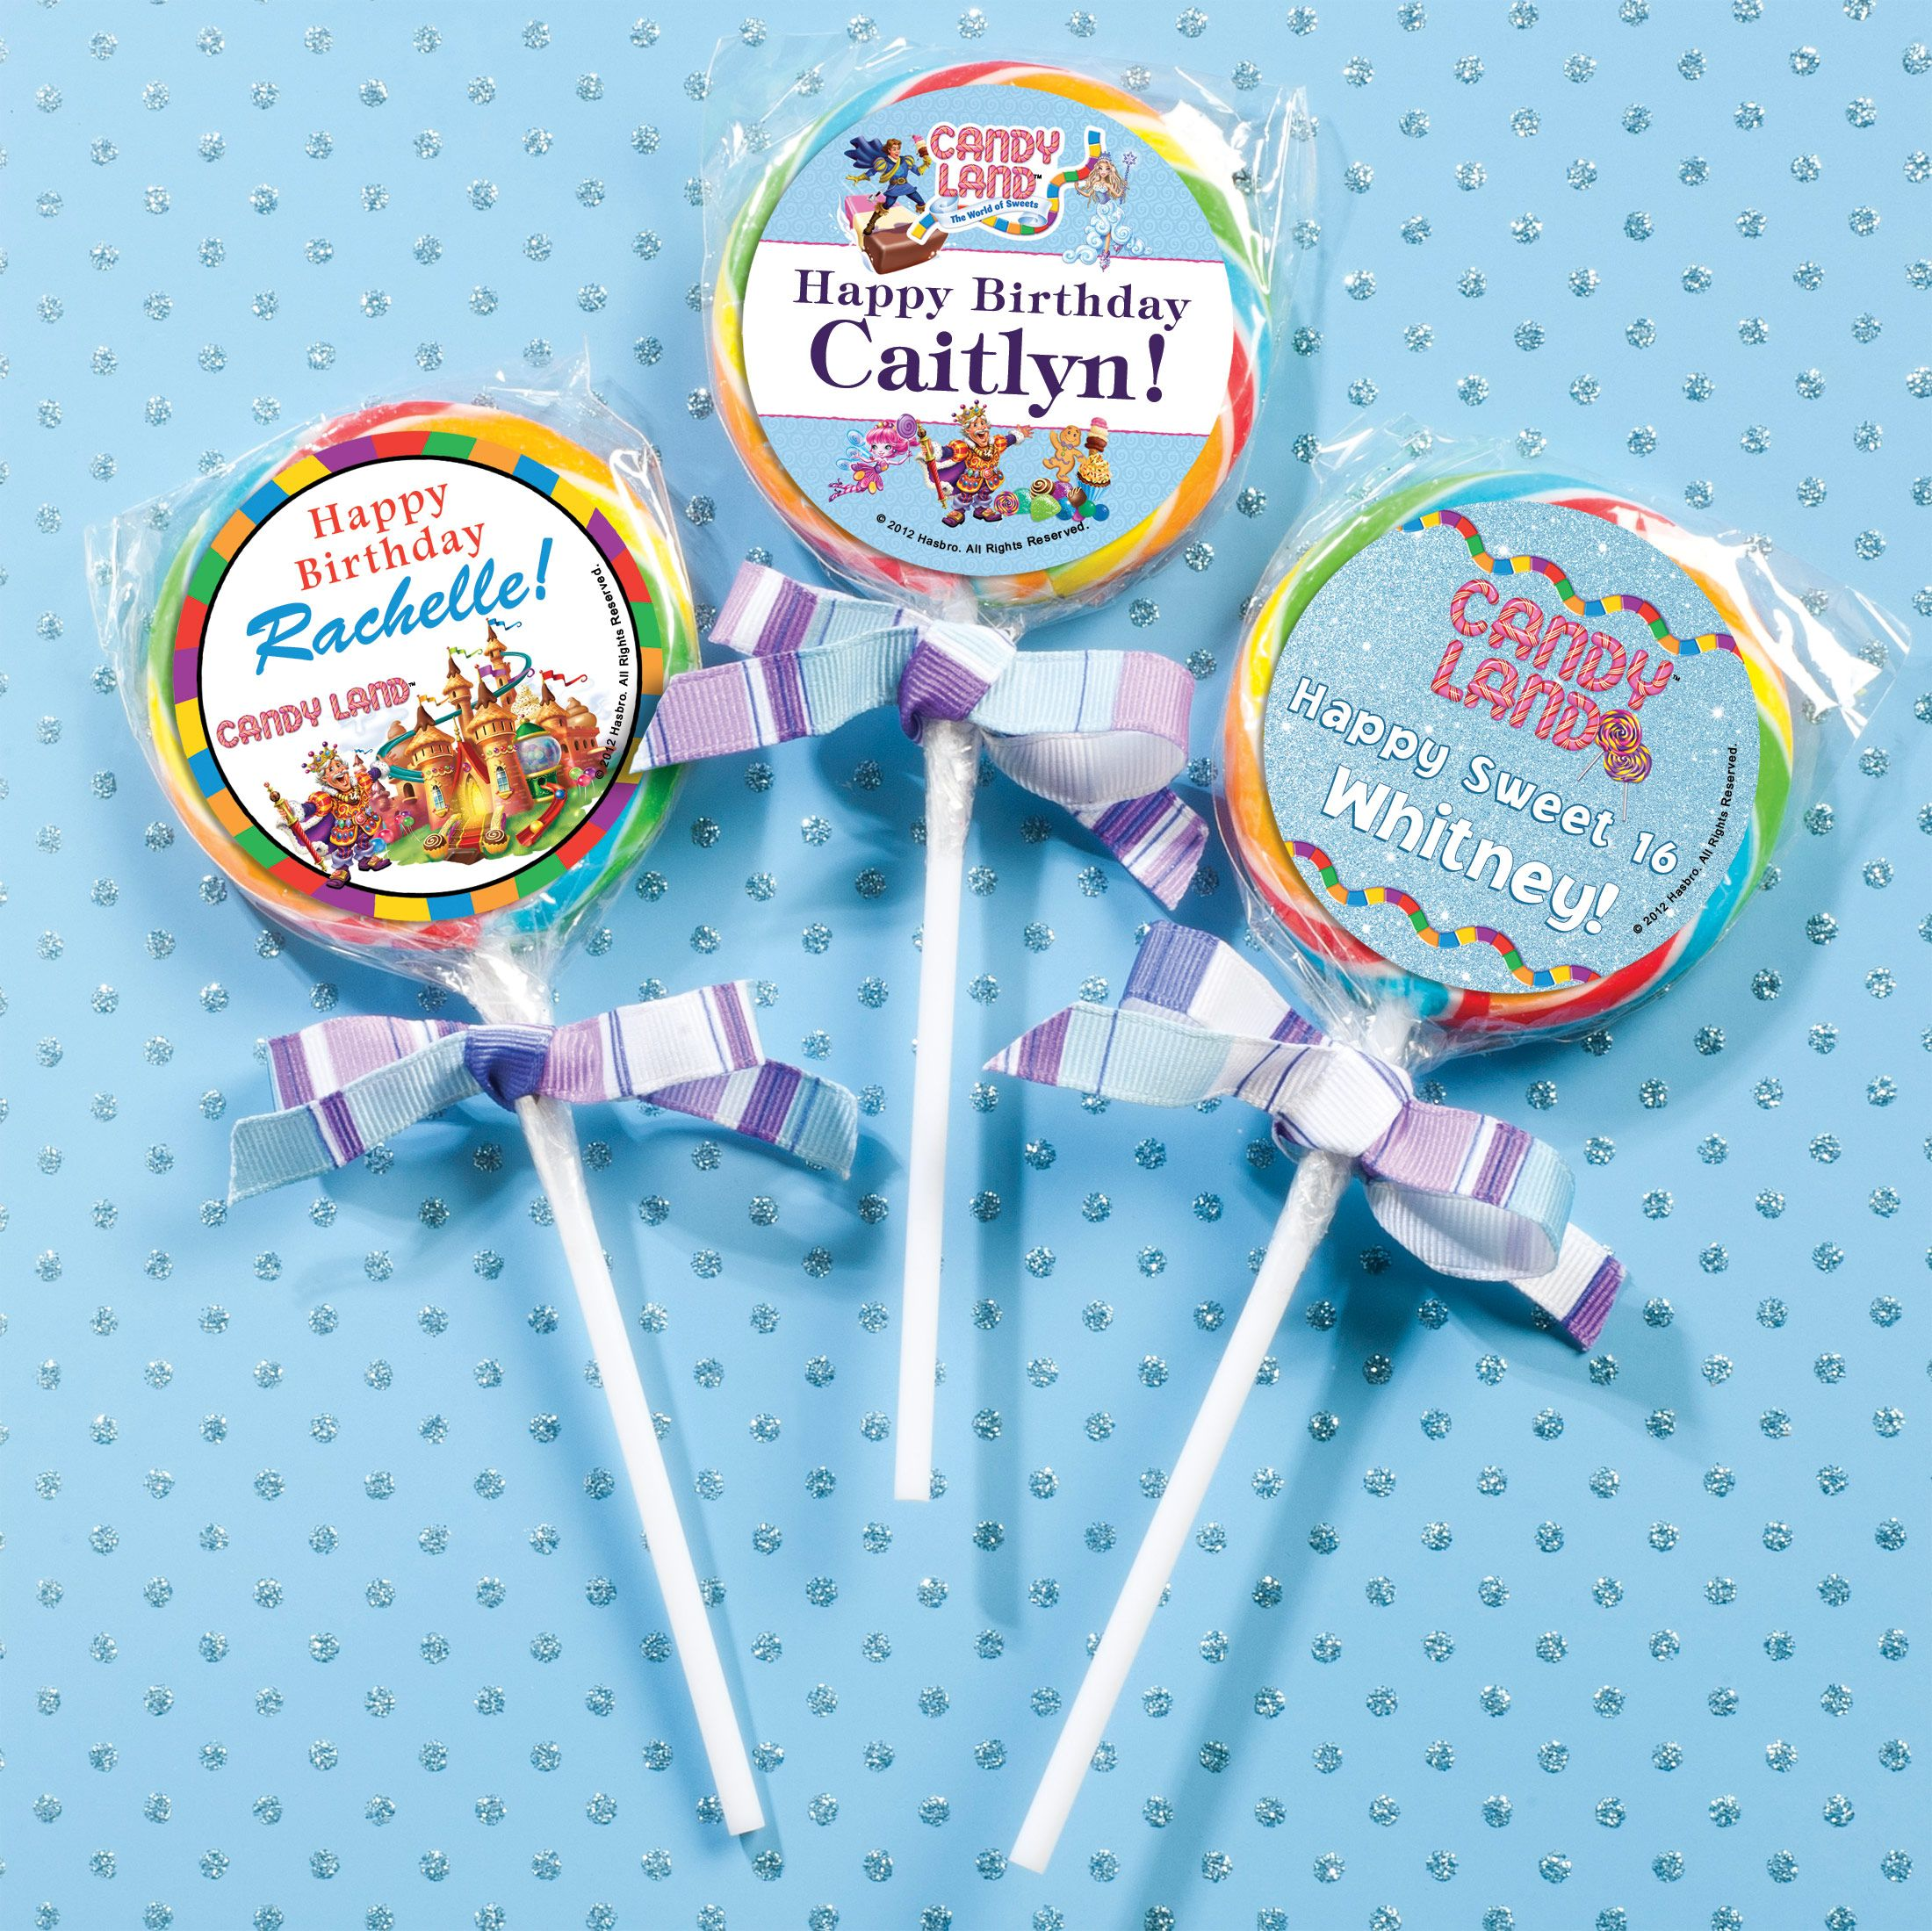 Candy party swirl lollipops feature your custom party details on the label for sweet treats and personlized favors!